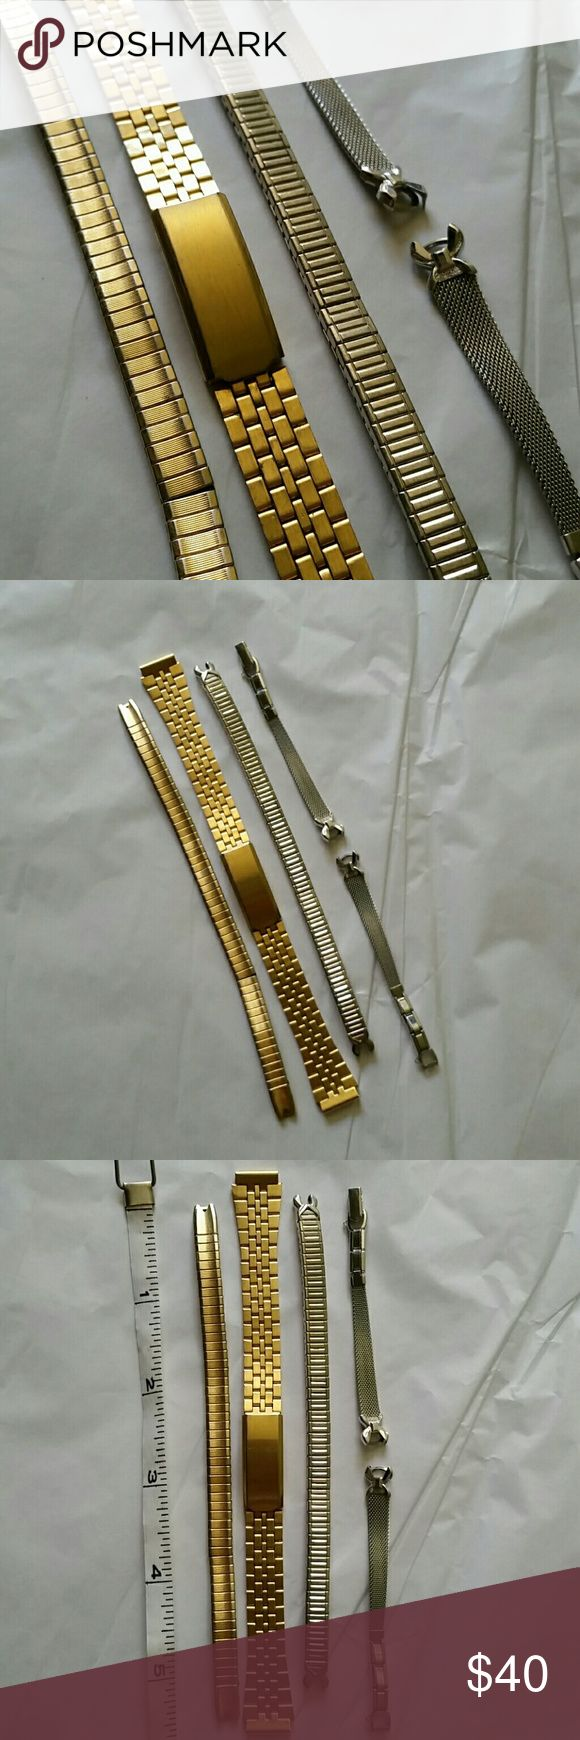 4 Vtg SS Watch Bands Hong Kong Replacement watch bands Vintage  Made in Hong Kong Stainless steel  Three silver tone and one gold tone Top on last picture needs repair at bend  Speidel  Bottom silver tone is 1/20 10kgf Speidel Accessories Watches